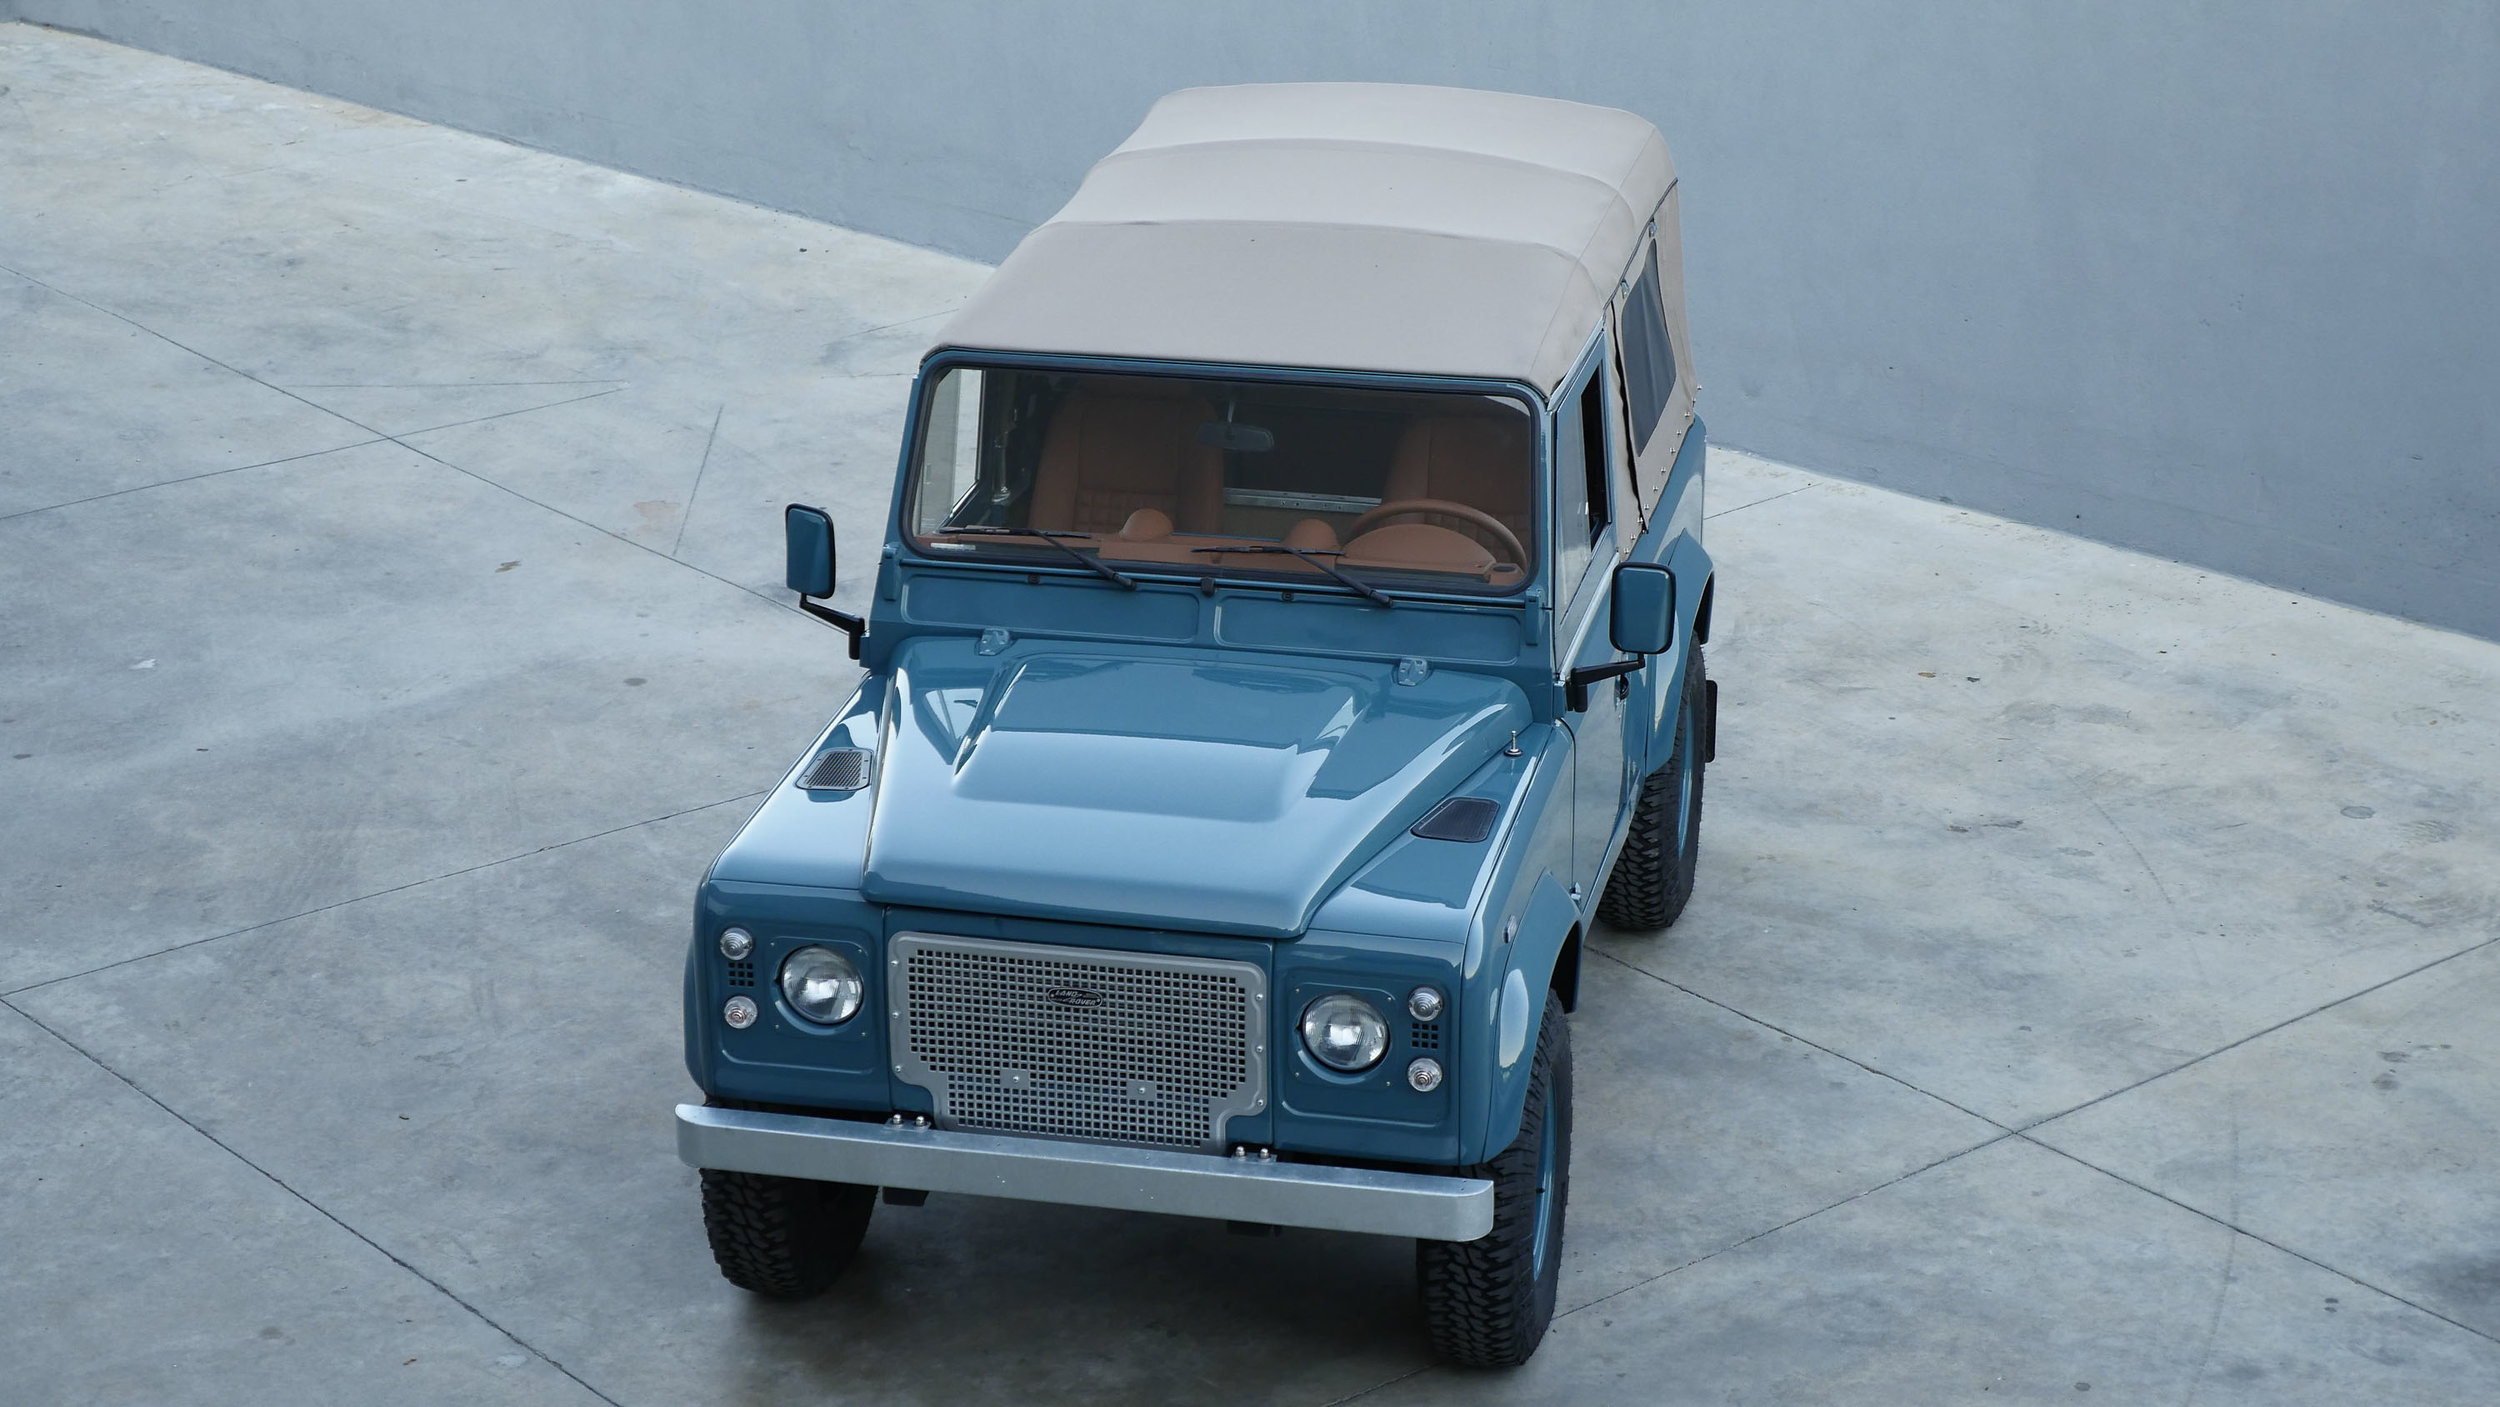 Coolnvntage Land Rover D90 (1 of 1).jpg